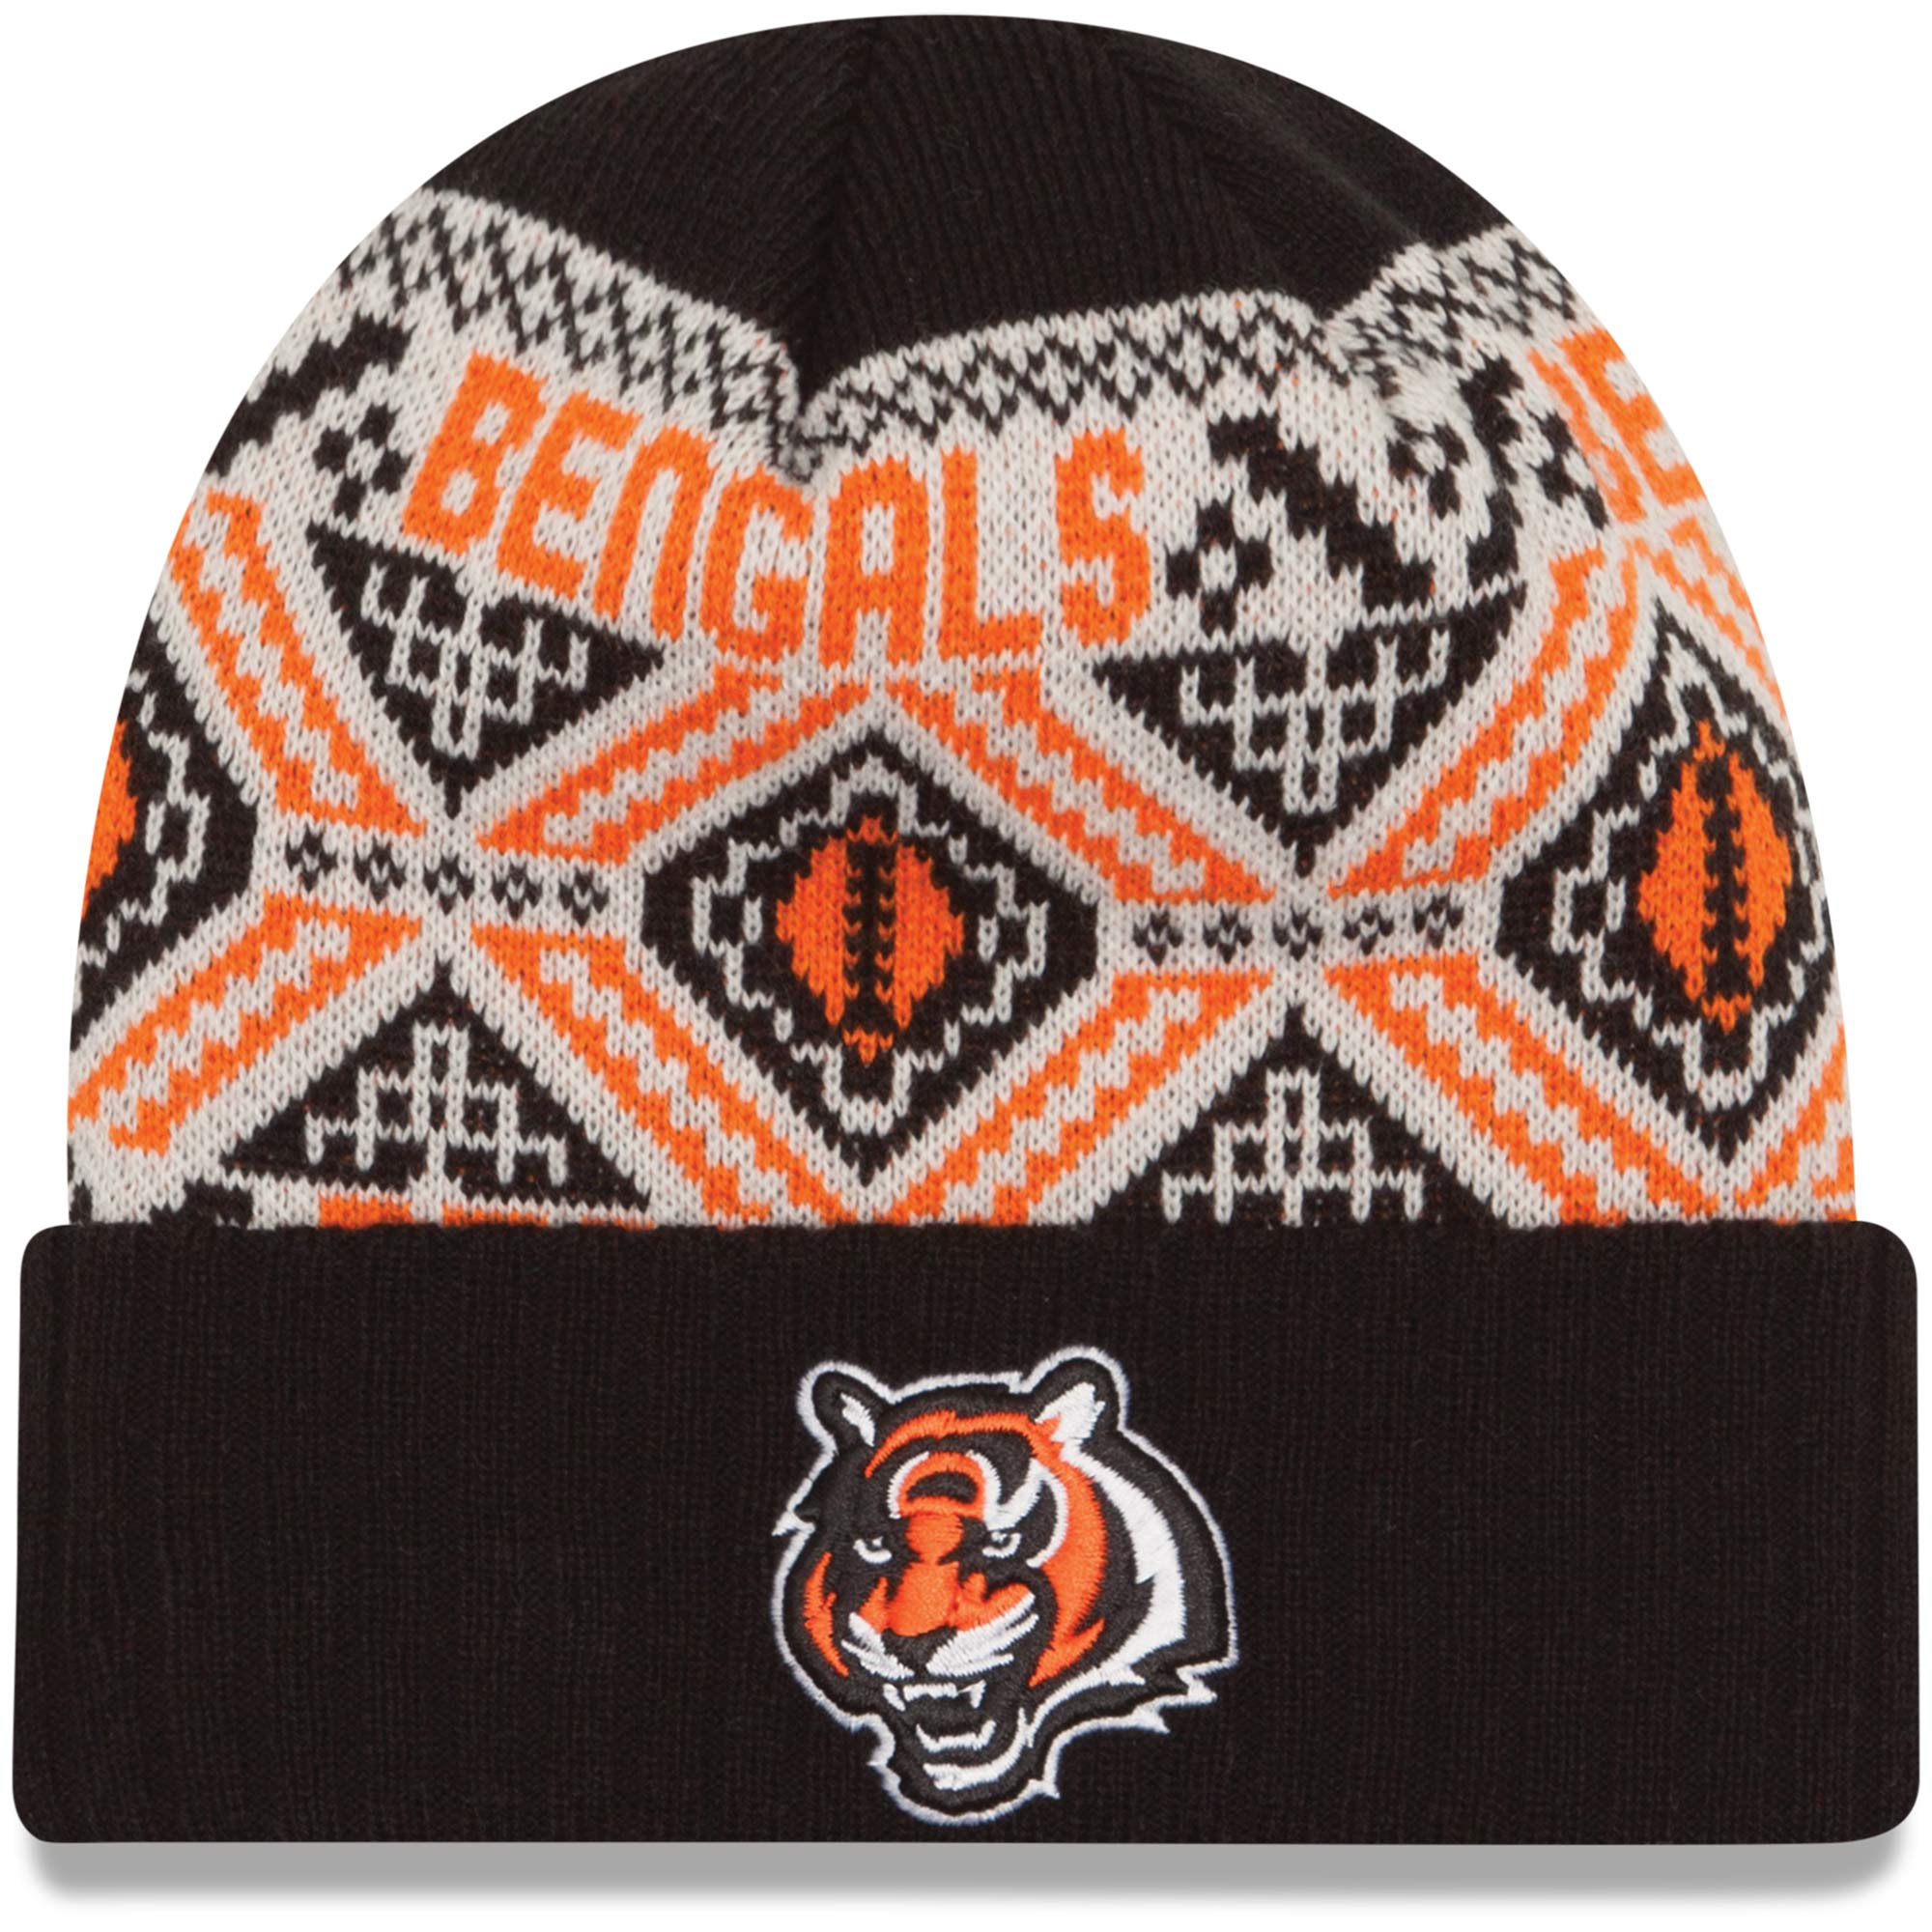 Brand New With Tags NFL New Era Cincinnati Bengals Beanie Hat Orange OSFA